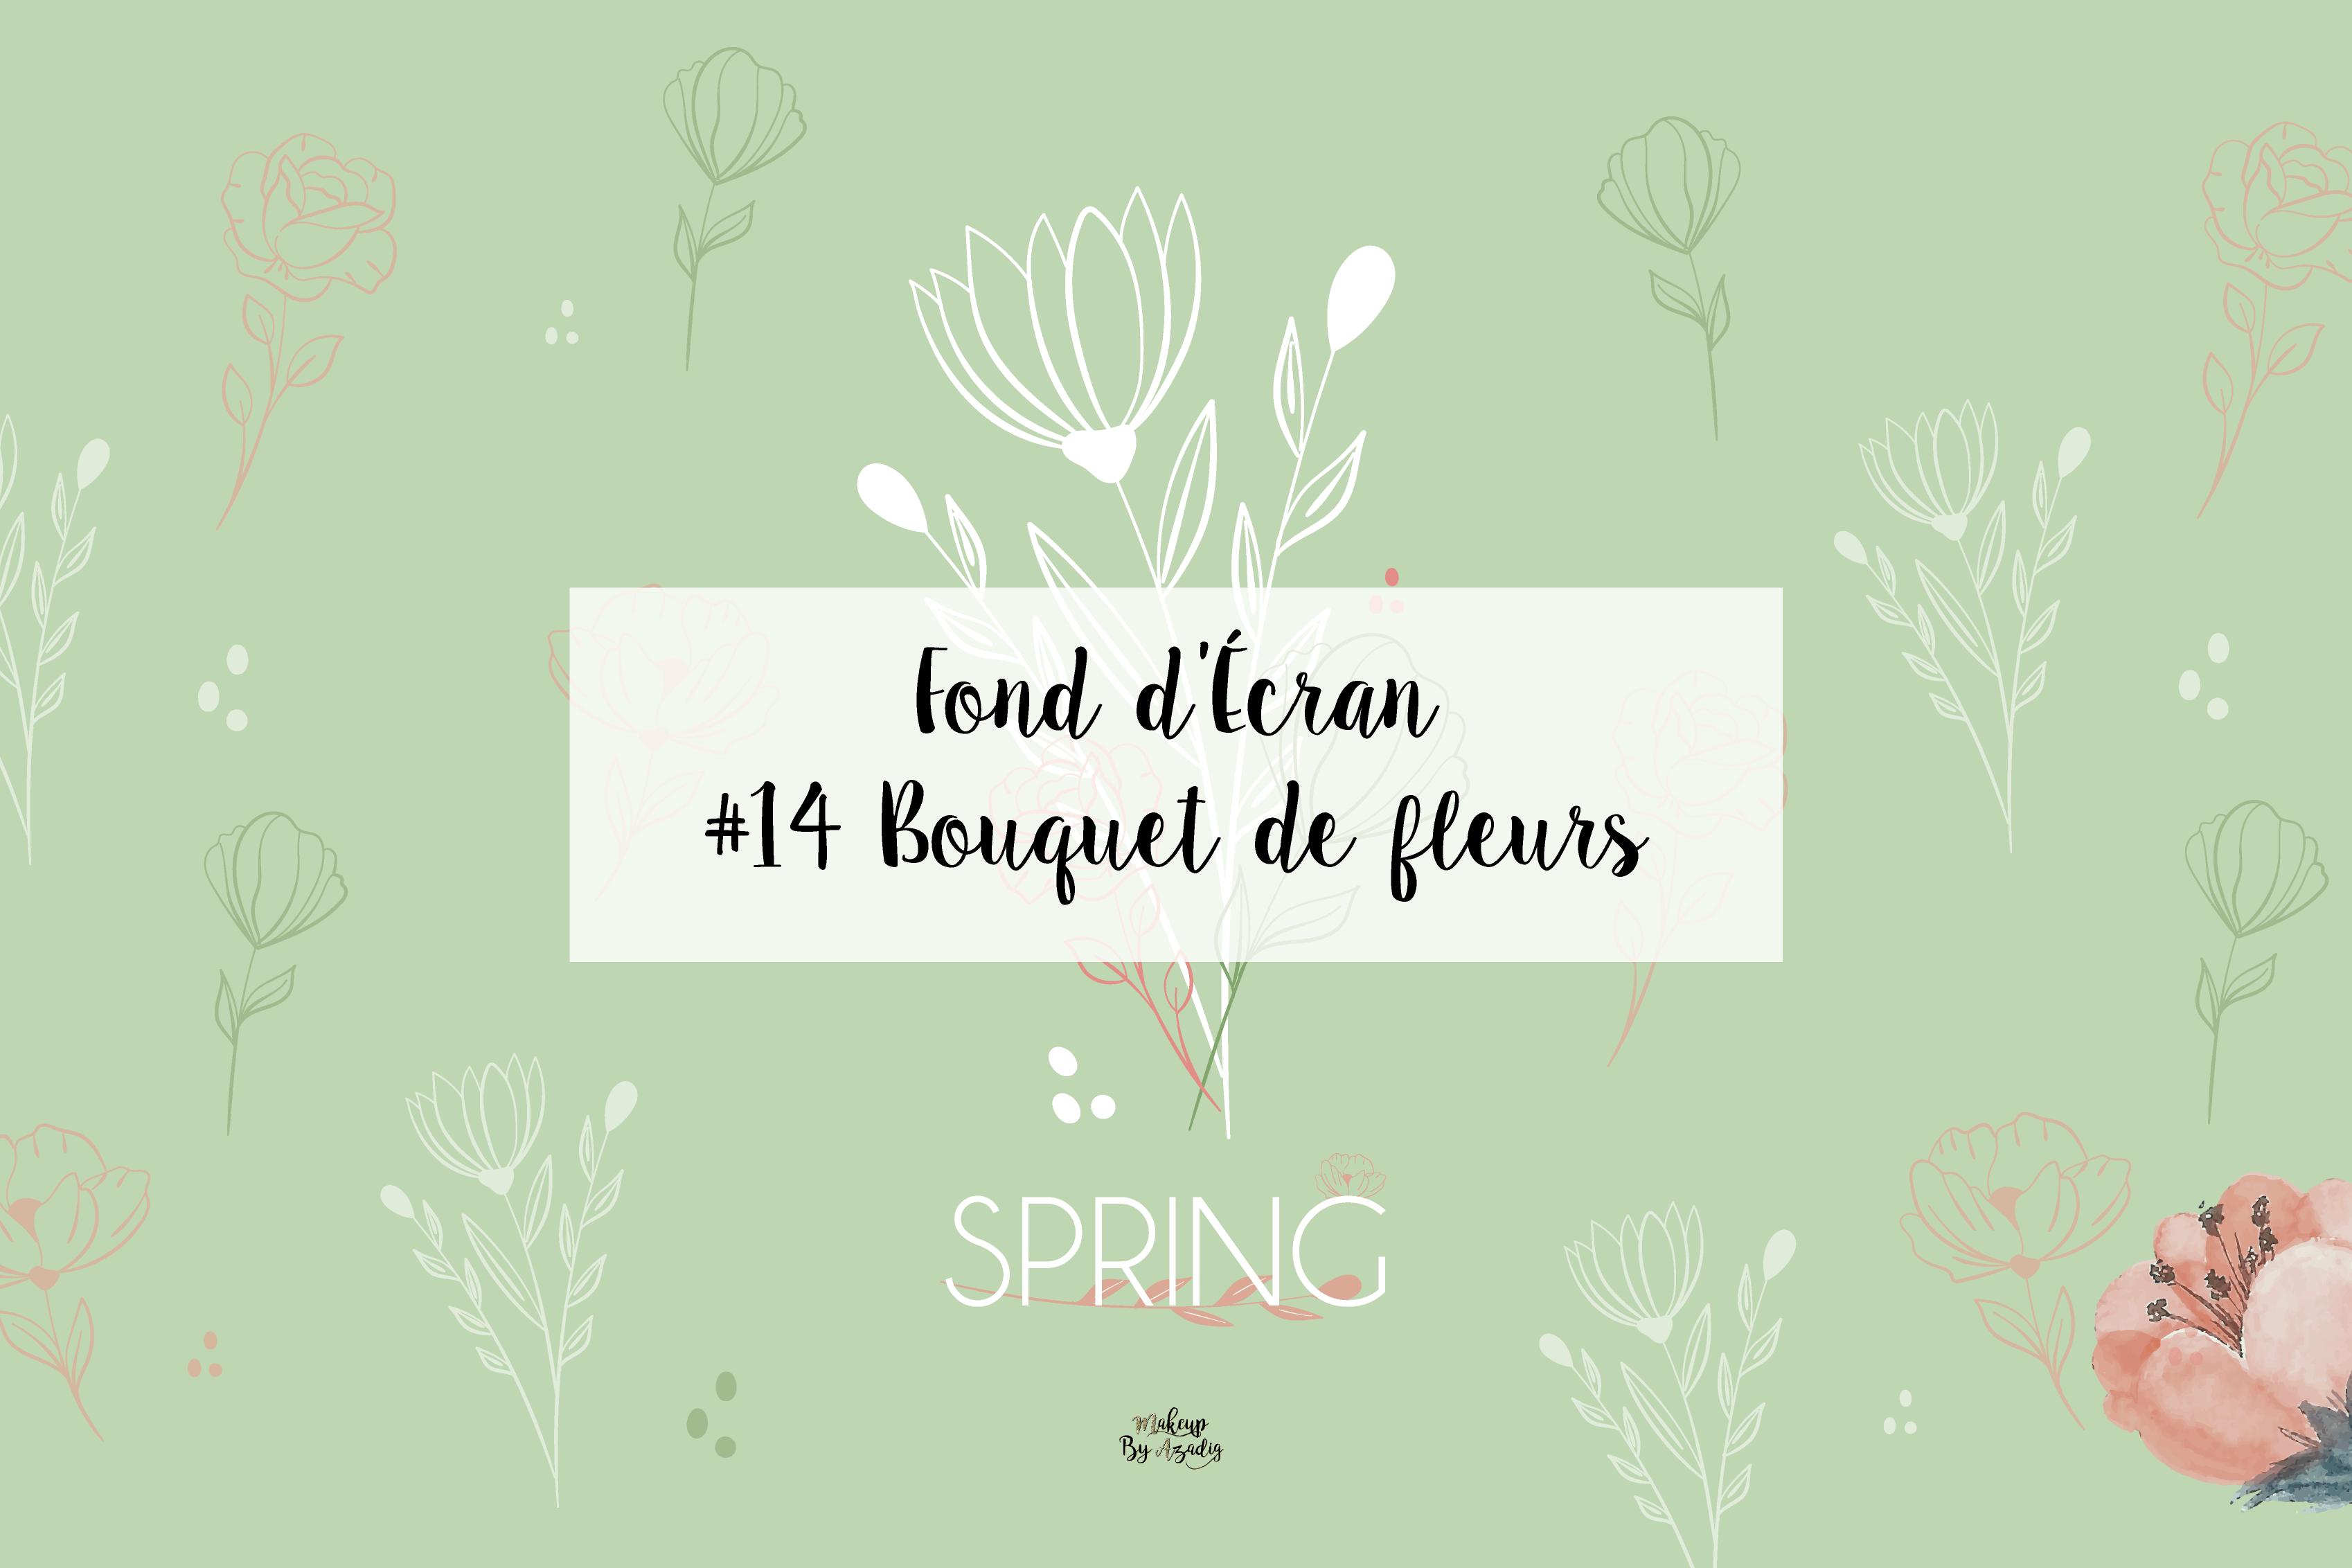 fond-decran-wallpaper-printemps-fleurs-flower-spring-girly-ordinateur-iphone-samsung-mac-macbook-imac-pc-makeupbyazadig-miniature